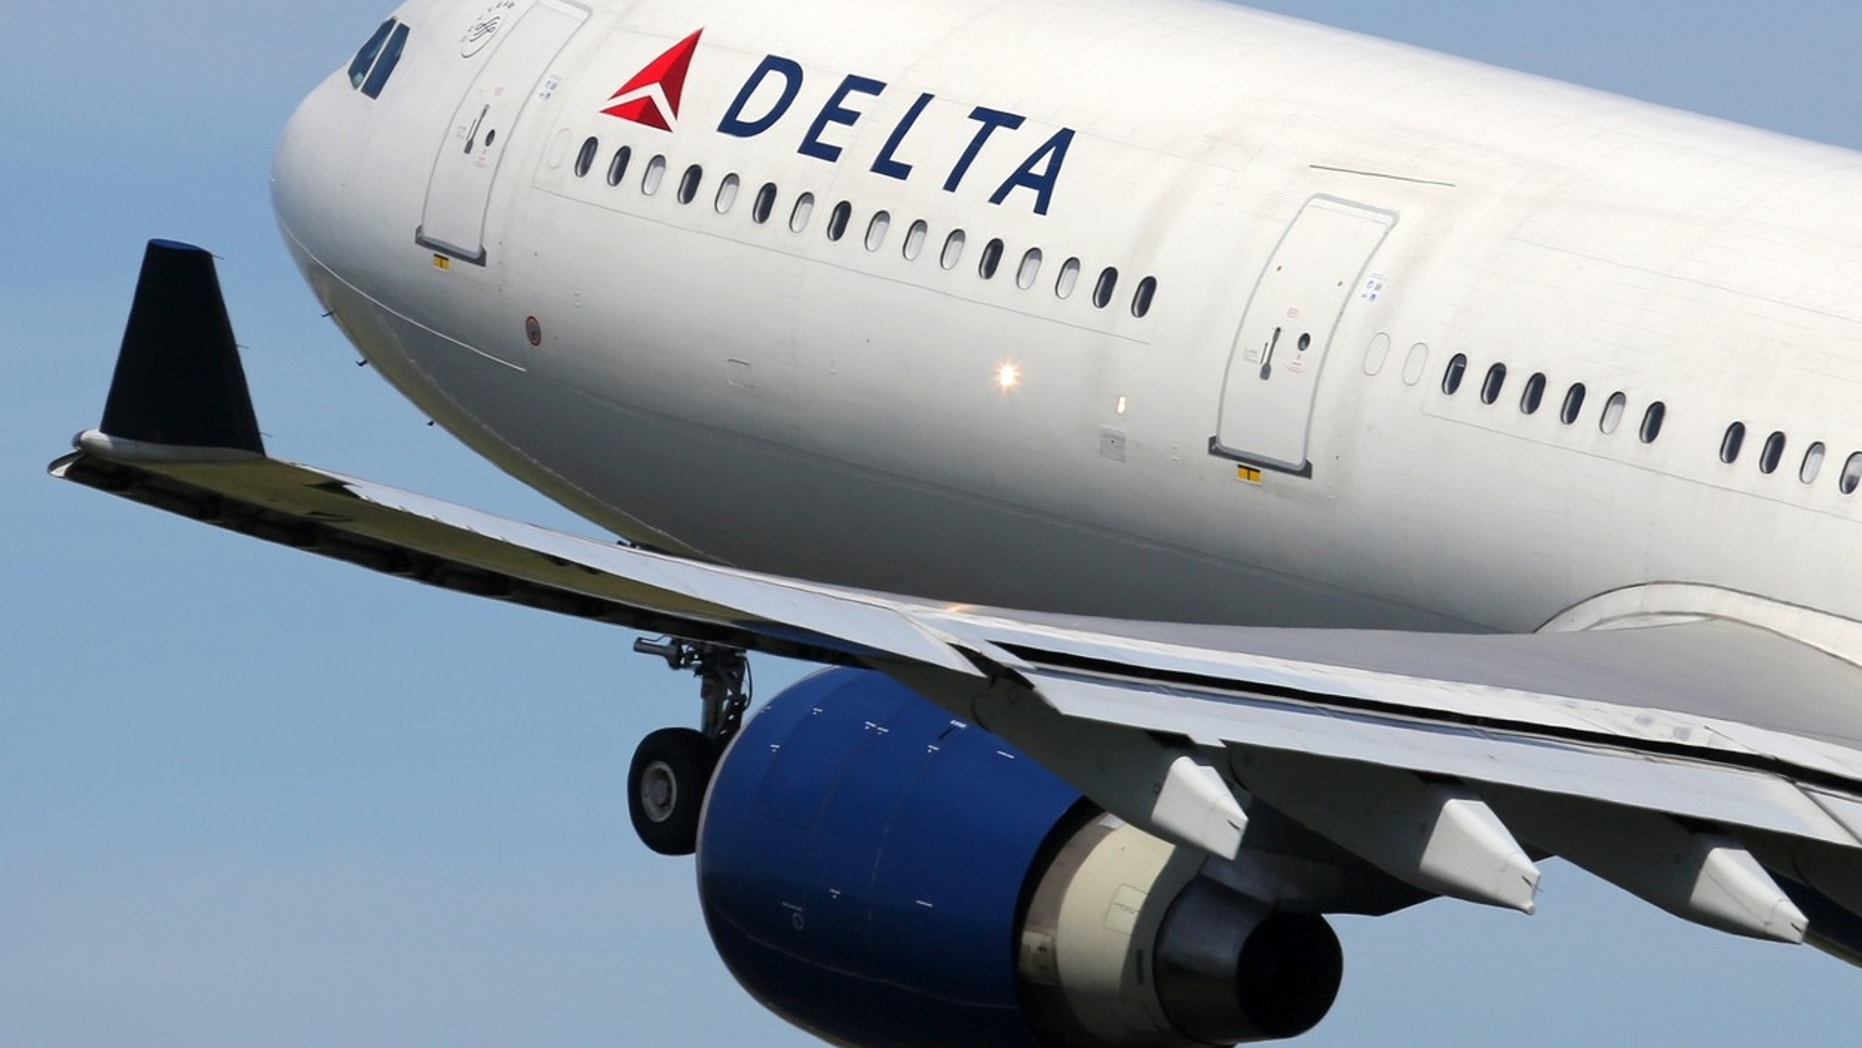 Delta Flight Makes Emergency Landing in Canada Due to 'Engine Performance Issue'